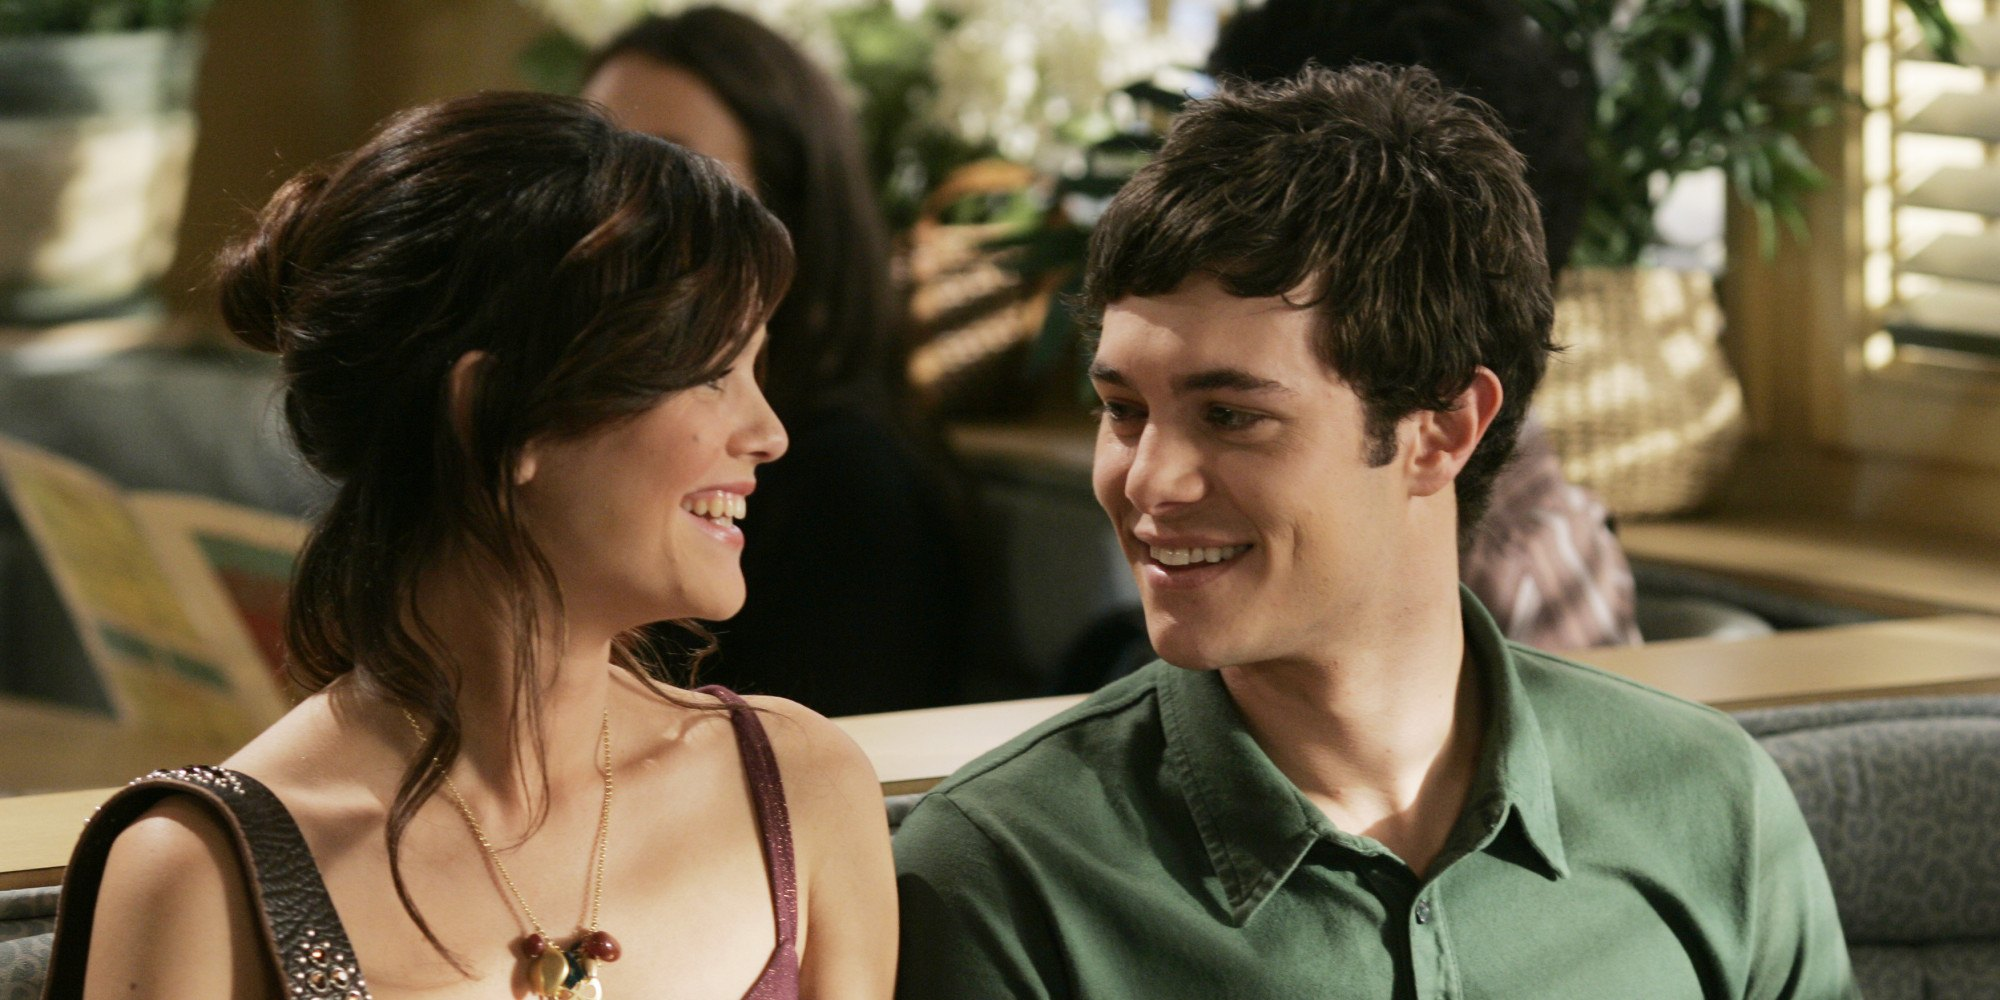 Rachel Bilson as Summer Roberts and Adam Brody as Seth Cohen on The O.C. smiling at each other.